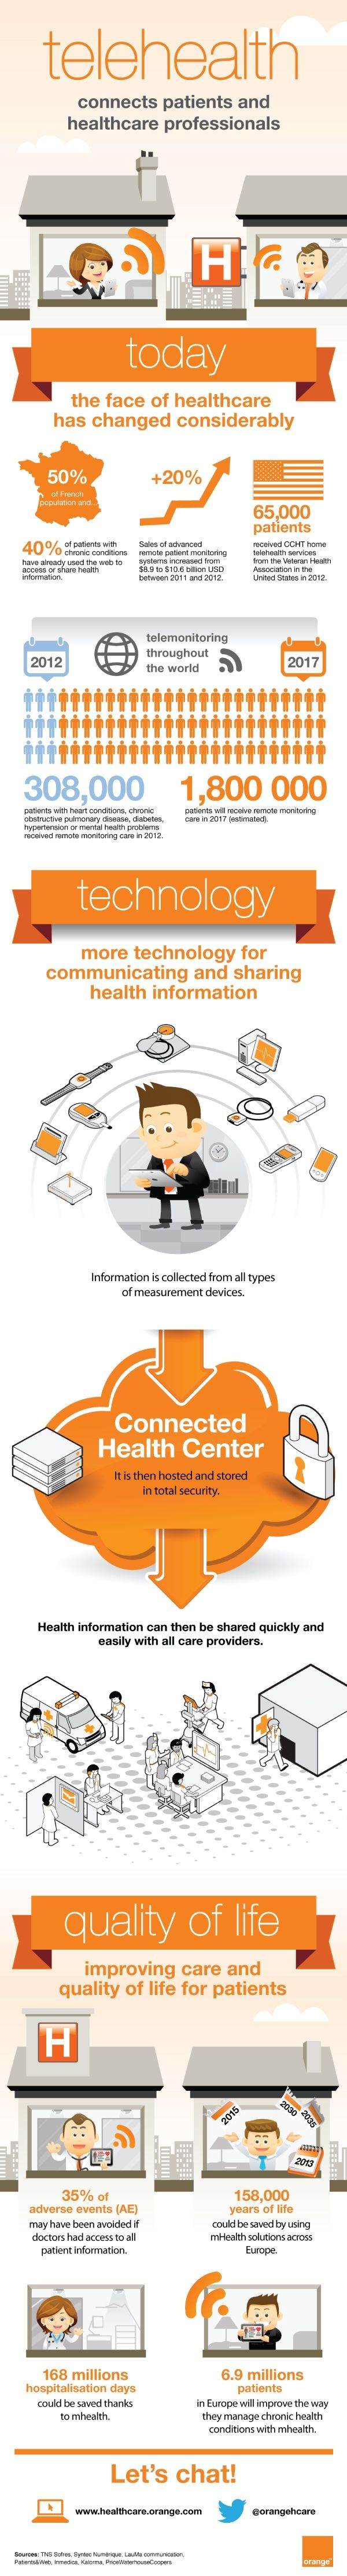 Infographic: How Telehealth Is Connecting Patients & Providers | New Visions Healthcare Blog #infographic #mHealth #eHealth #ehr #emr #healthcare #healthit #hcmktg #hcsm #HITsm #PPACA #ACA #meaningfuluse - www.healthcoverageally.com